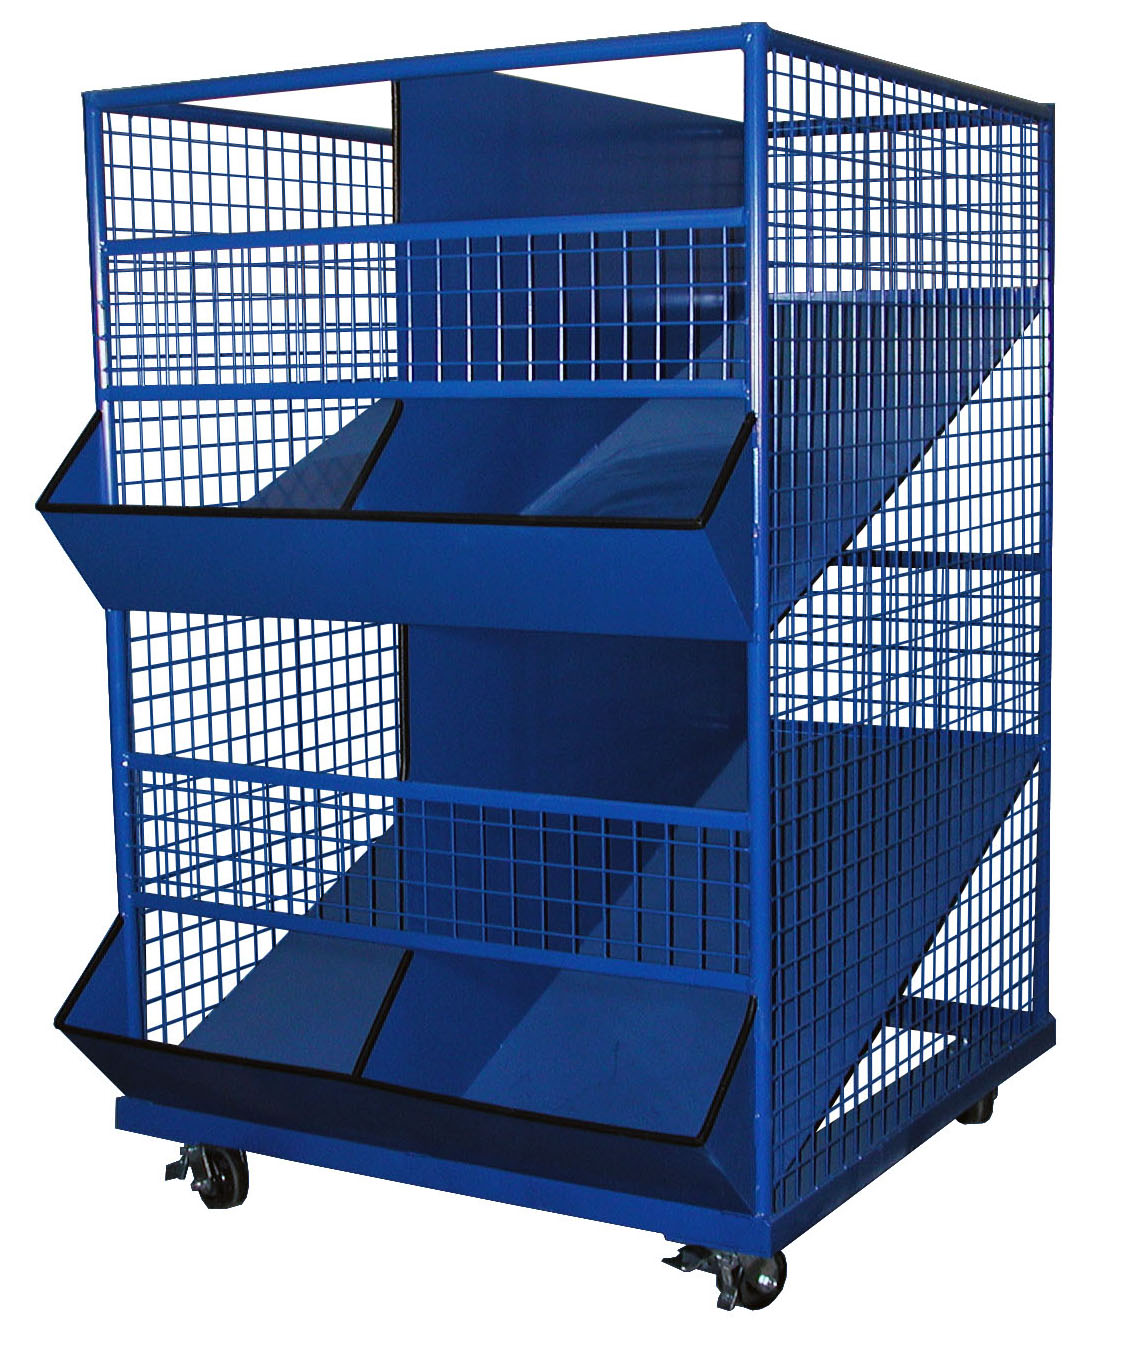 4 Section Utility Bin Cart 2 Shelves George O Day S Inc